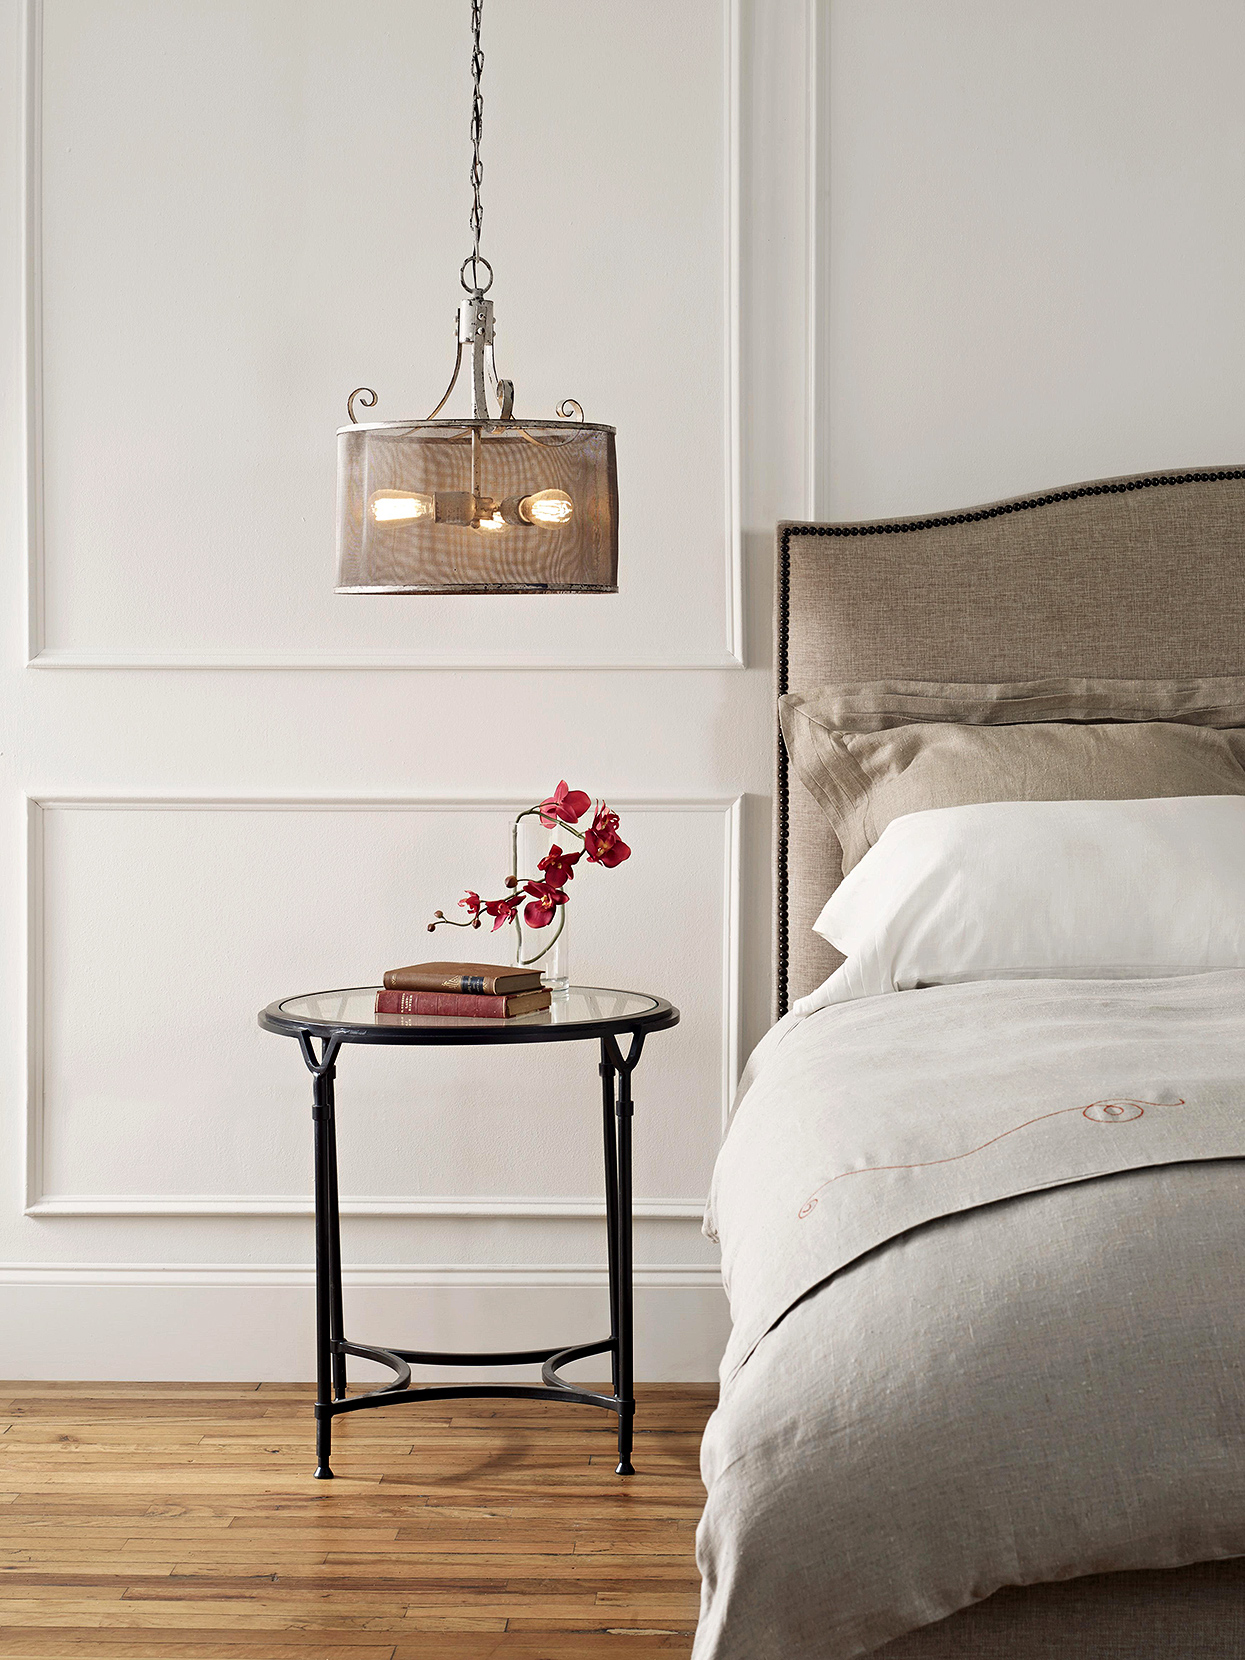 neutral bedroom with pendant light and wainscoting